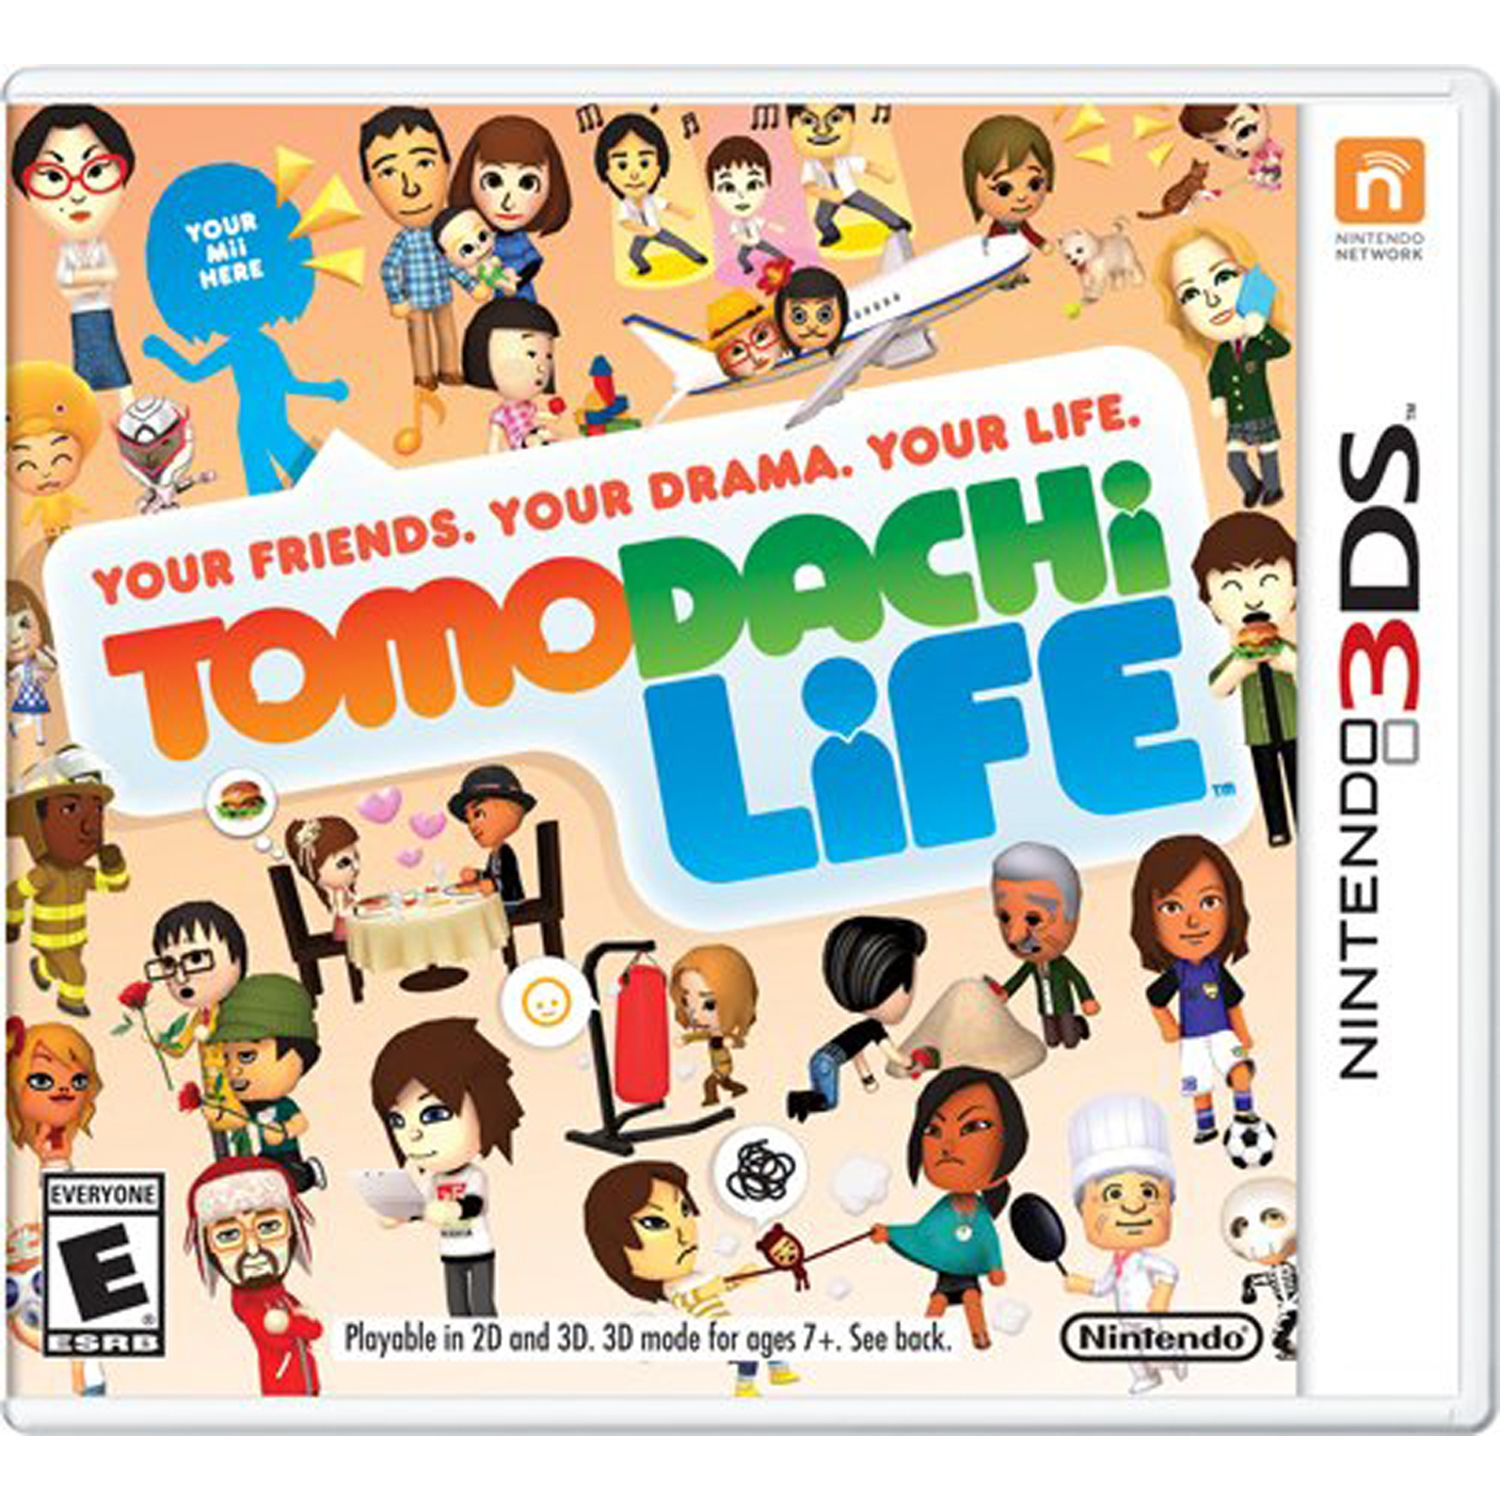 Tomodachi Life Nintendo Nintendo 3ds Digital Download 0004549668048 Walmart Com In 2020 Nintendo 3ds Games Ds Games Nintendo 3ds